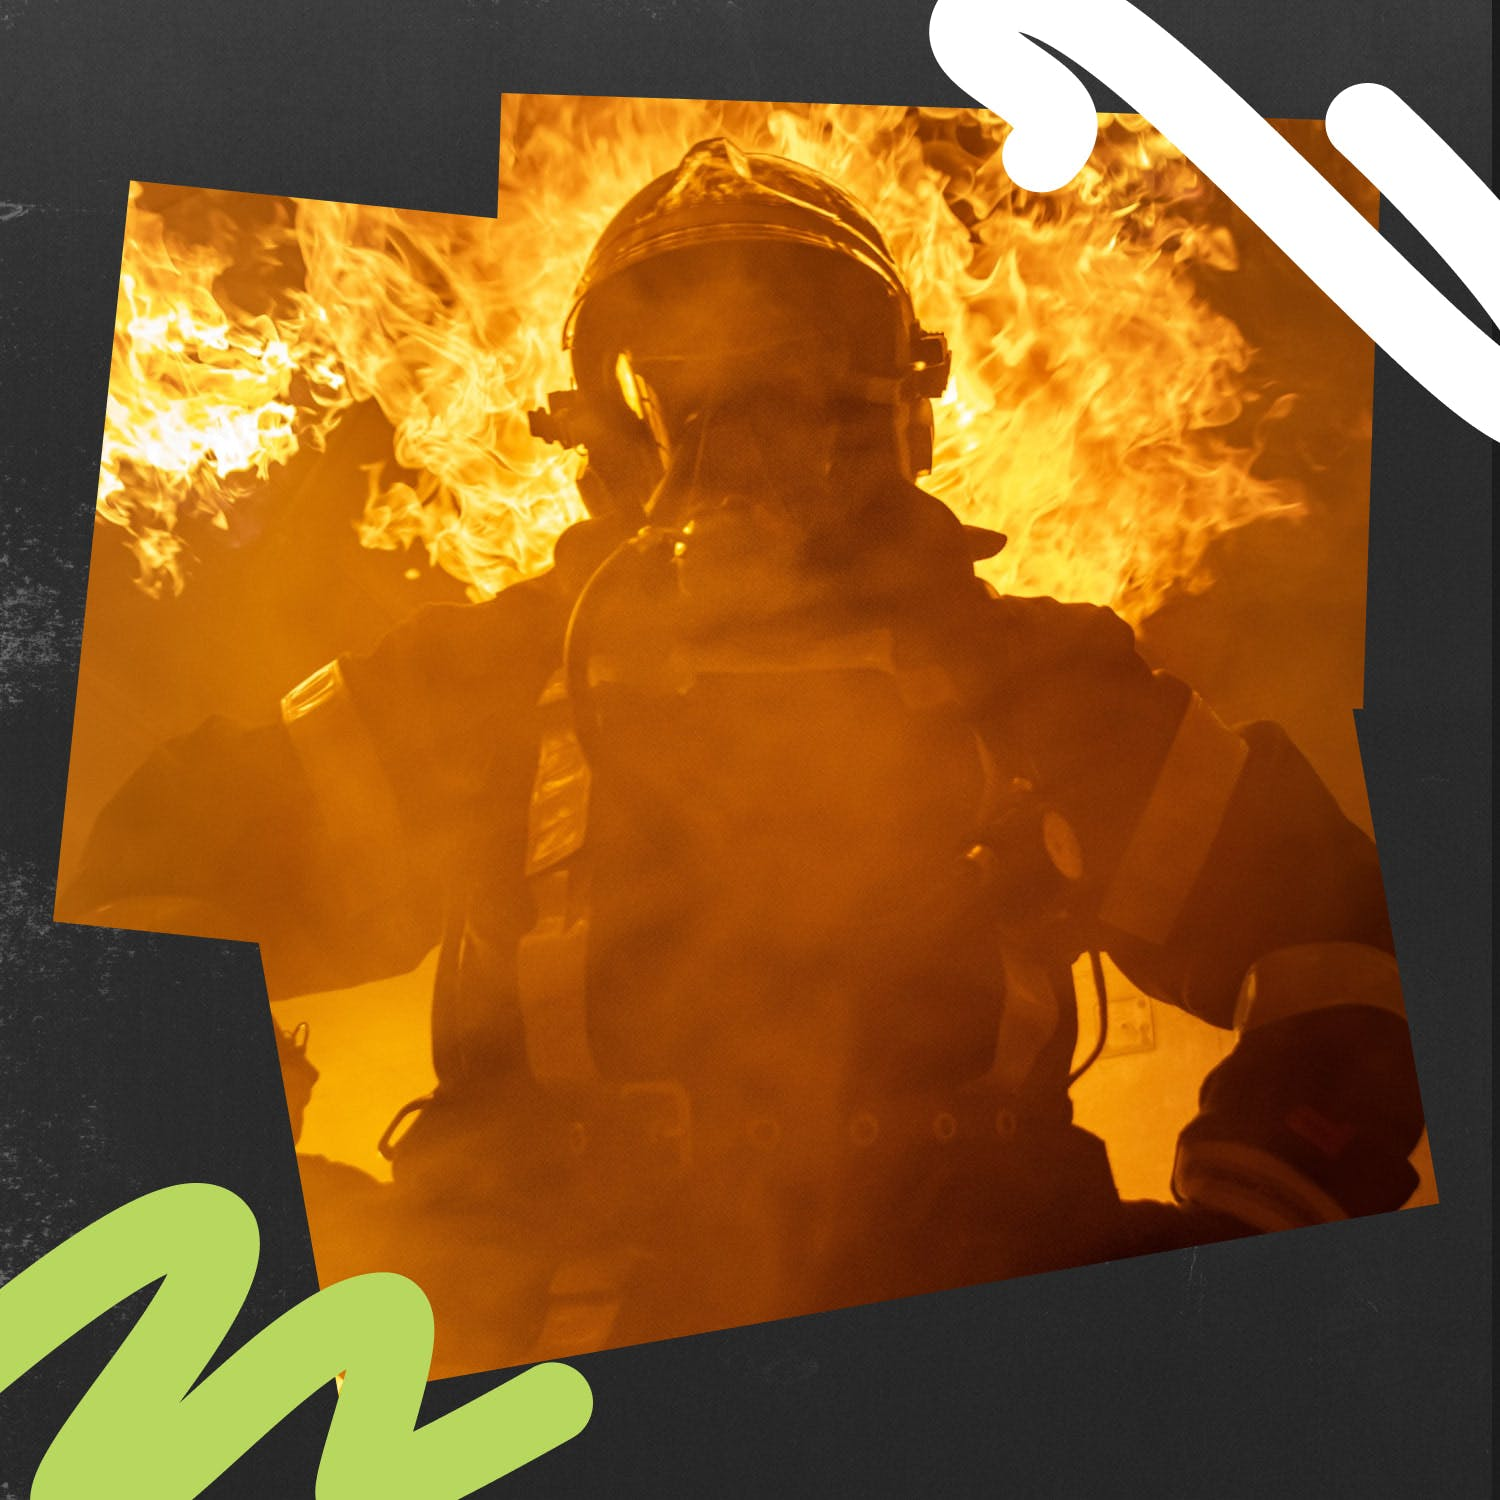 My Adrenaline Junkie Story: From UFC Fighter to Firefighter